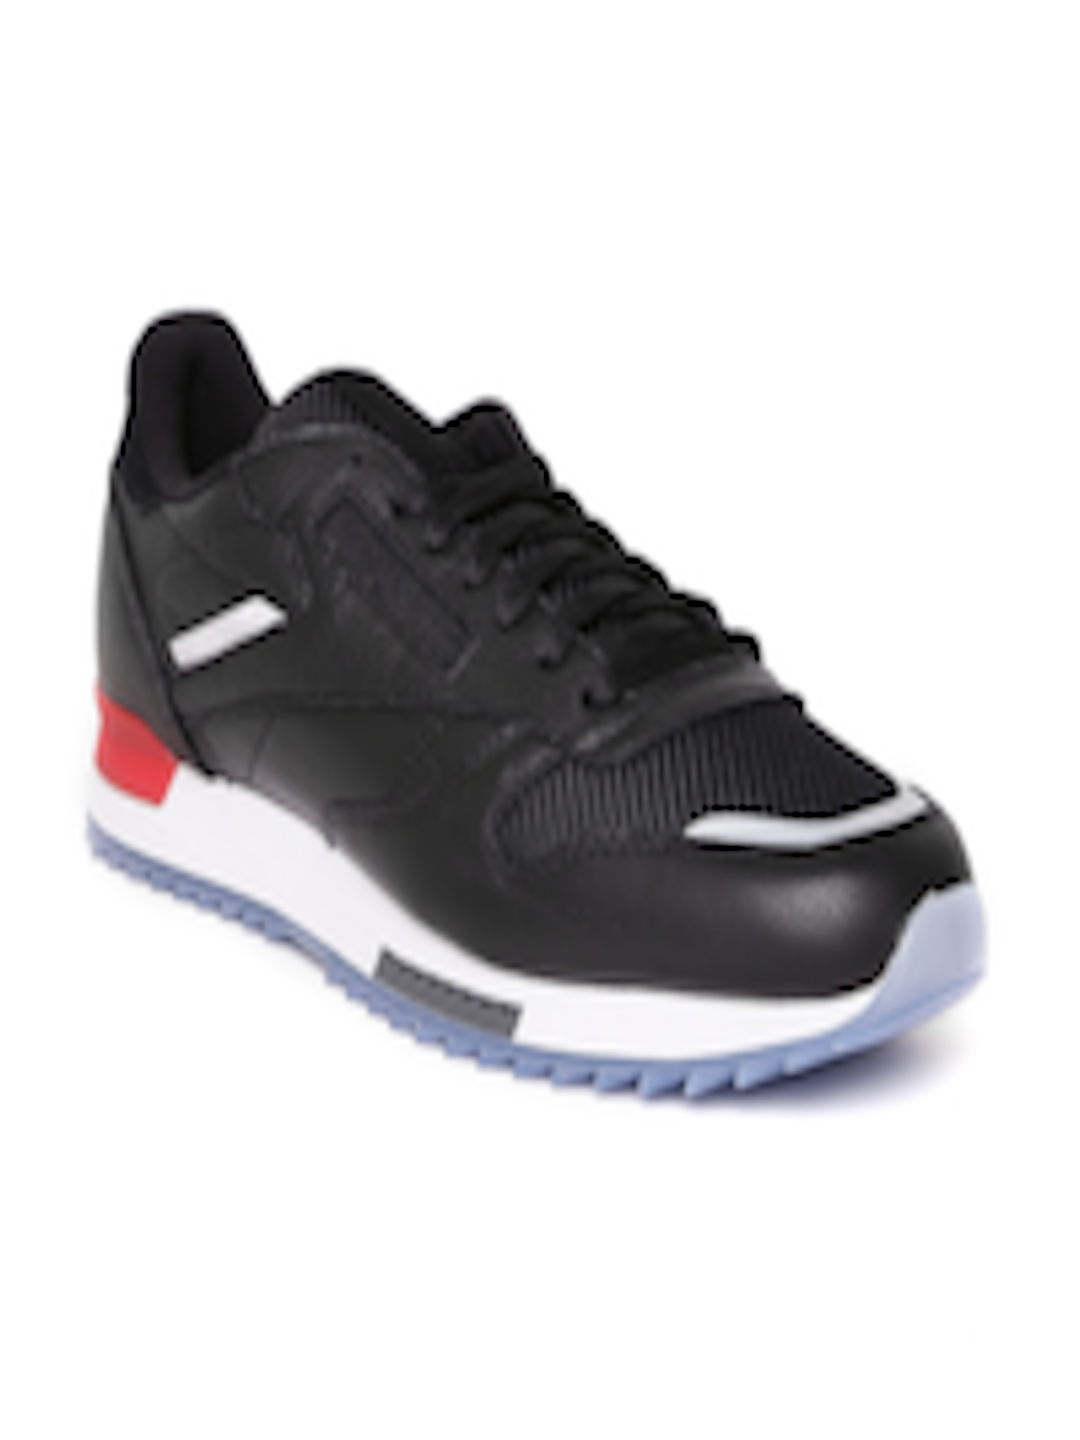 797b9a0bf9e6 Buy Reebok Classic Men Black CL Leather Ripple BP Sneakers - Casual Shoes  for Men 2003319 | Myntra